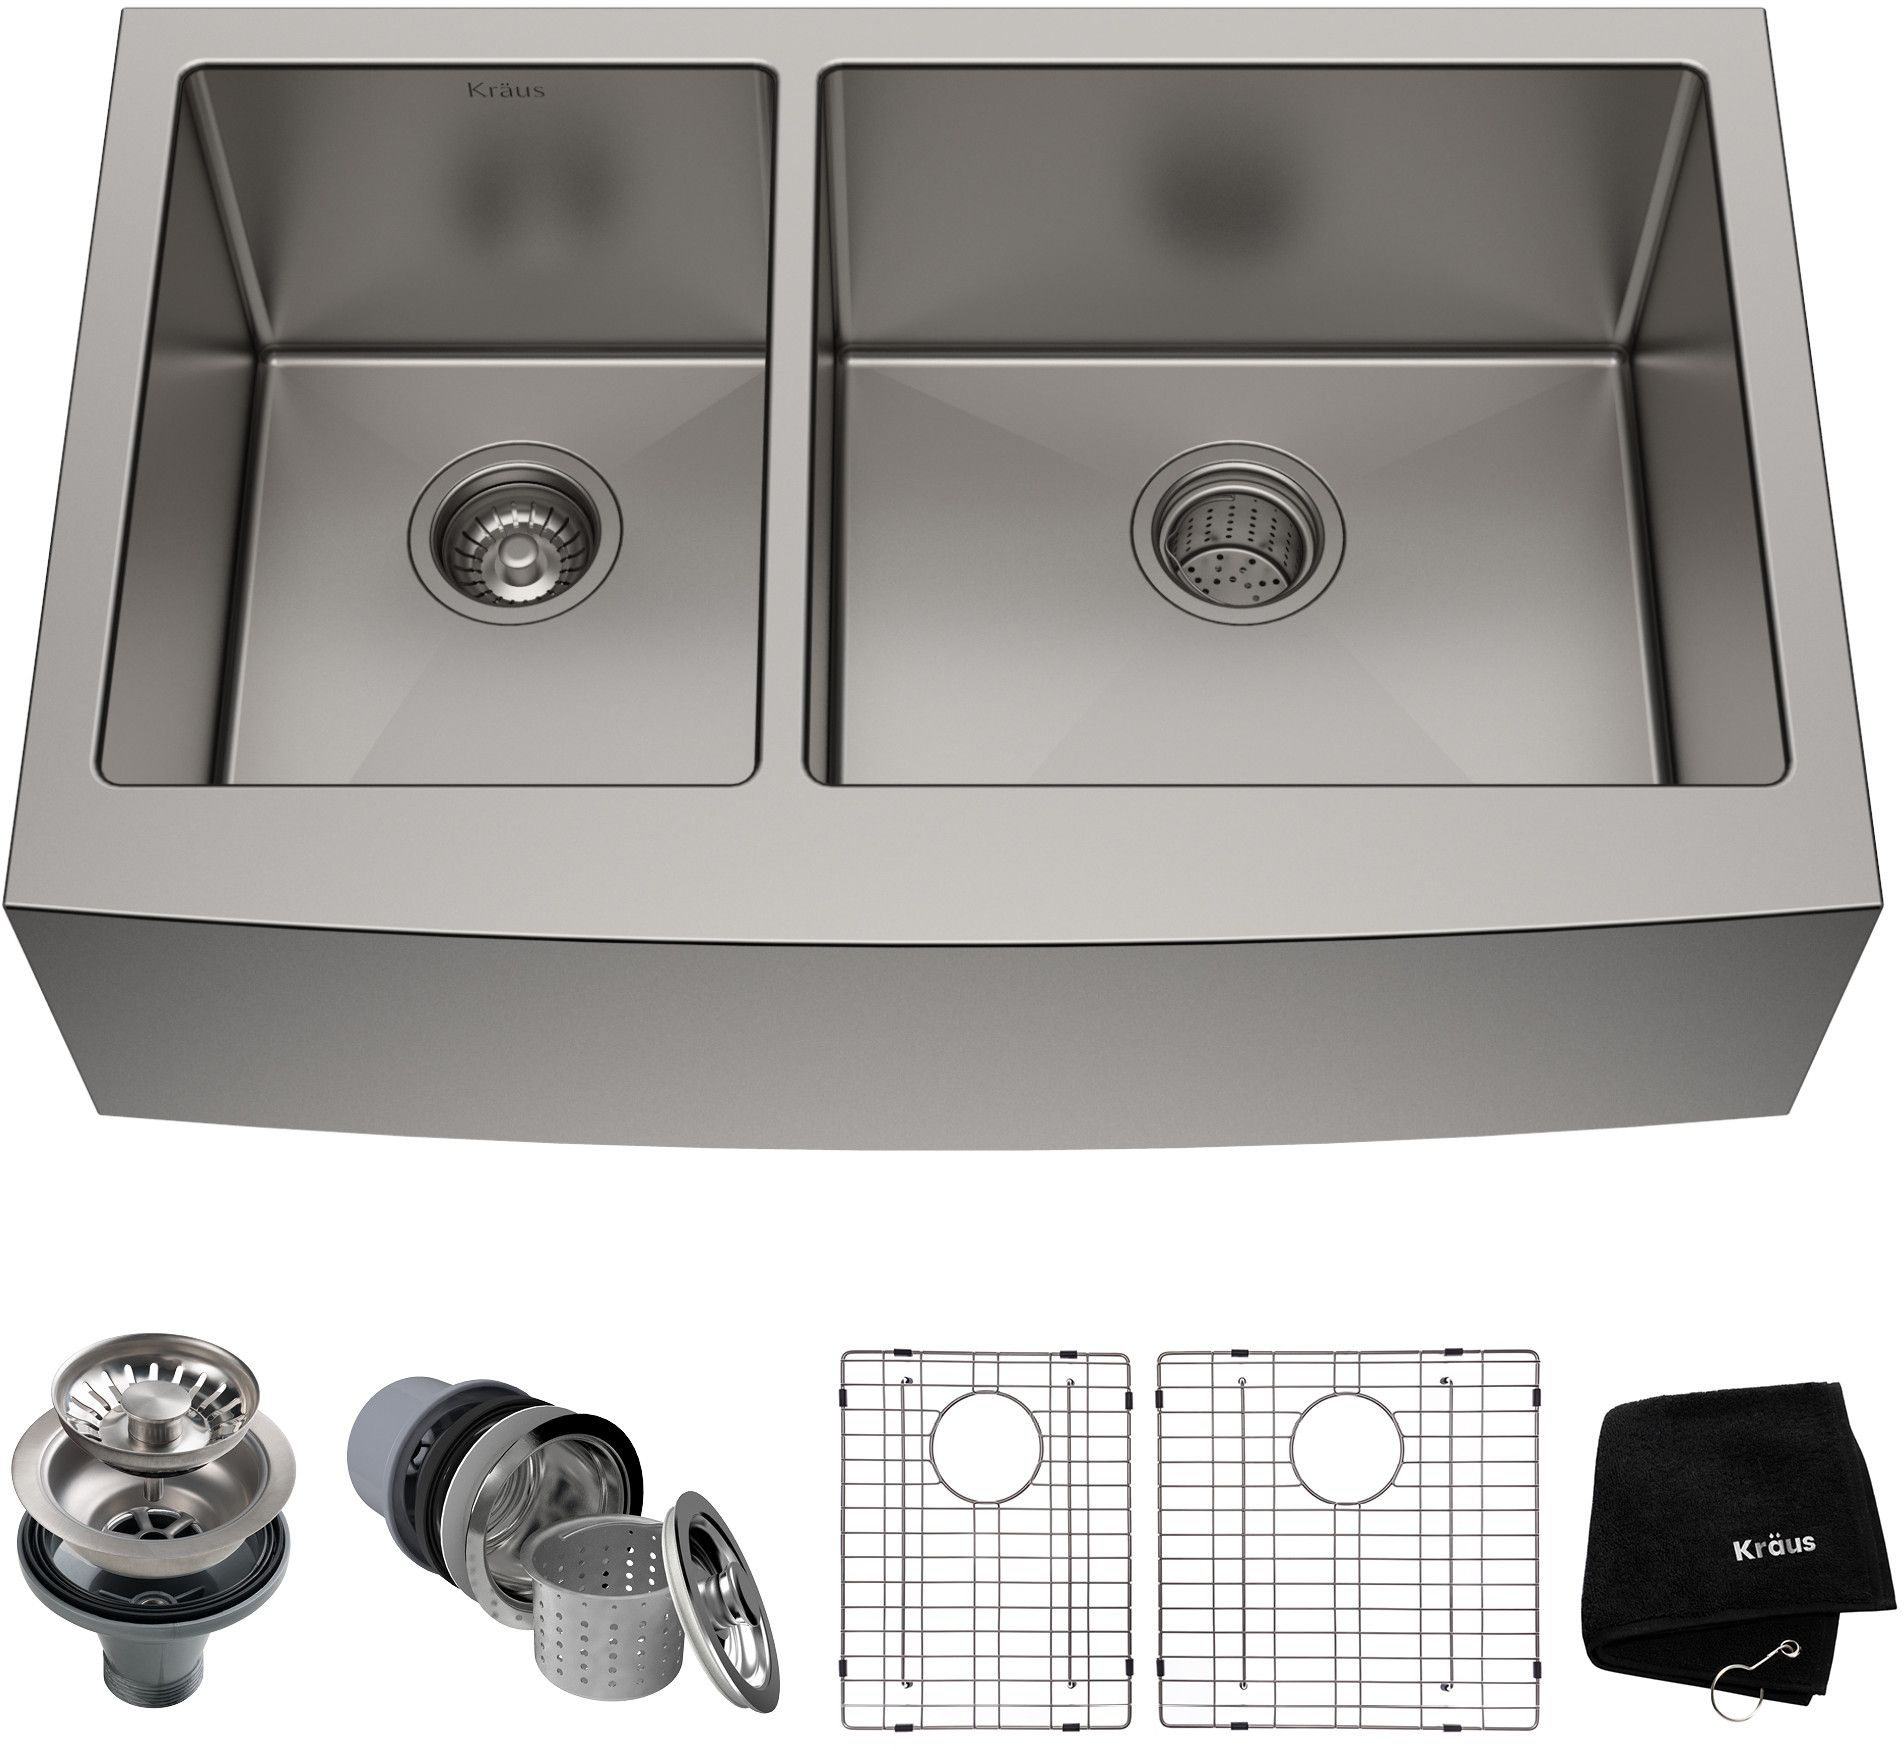 Kraus Standart Pro Series Khf20433 Double Bowl Kitchen Sink